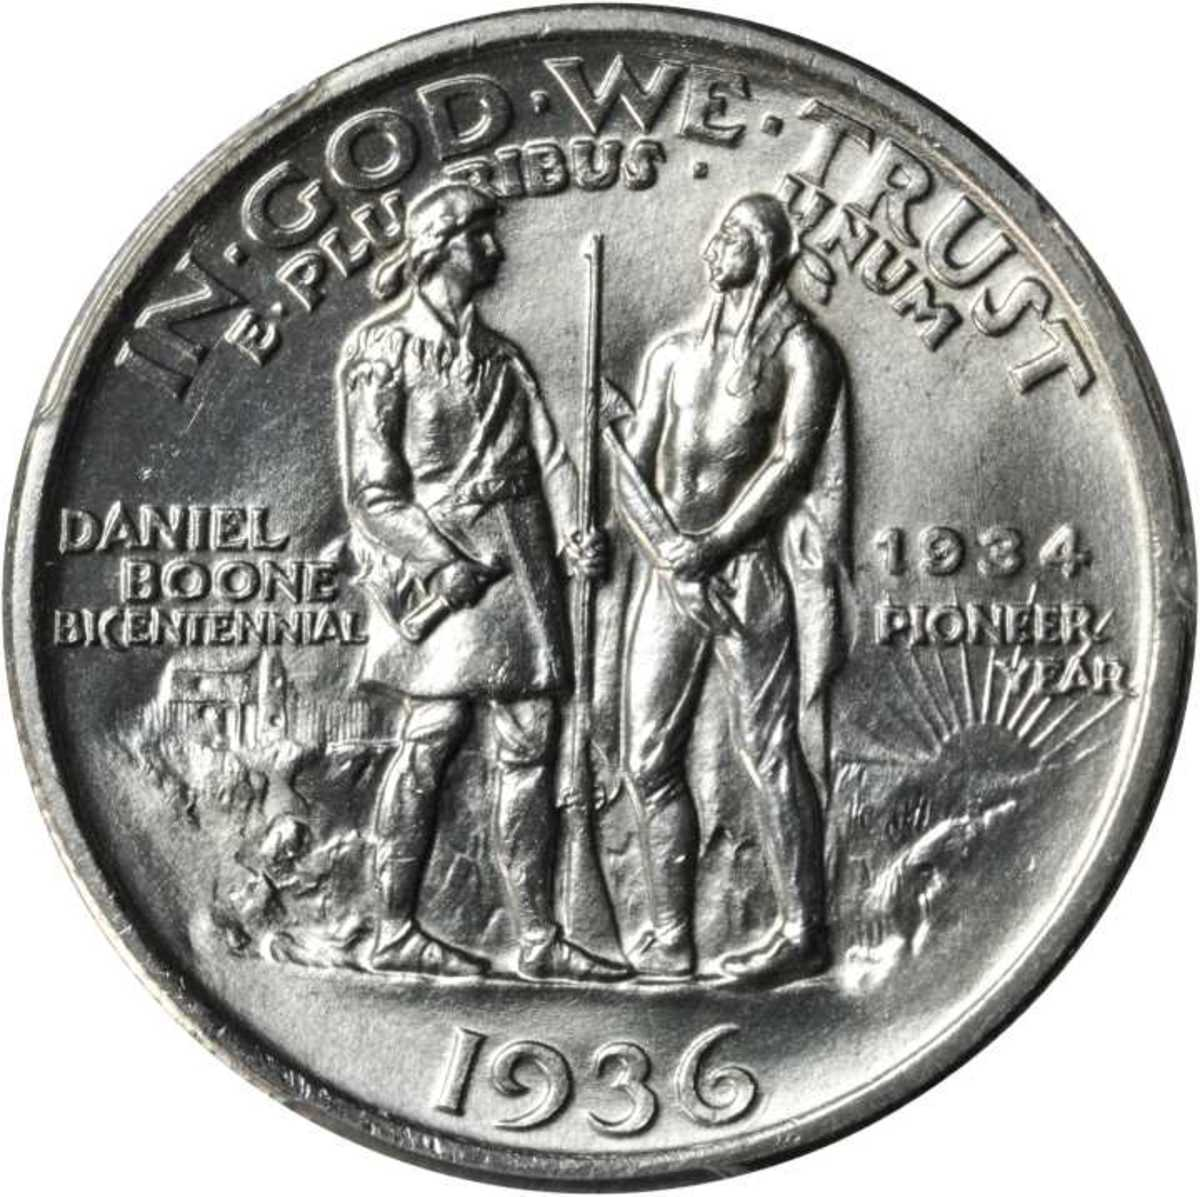 Reverse (back) of the United States 1934 to 1936 Daniel Boone commemorative half dollar. The coin was issued by the U.S. mint to commemorate the 200th year anniversary of Daniel Boone. Boone is on the left with Blackfish, chief of the Chillicothe.